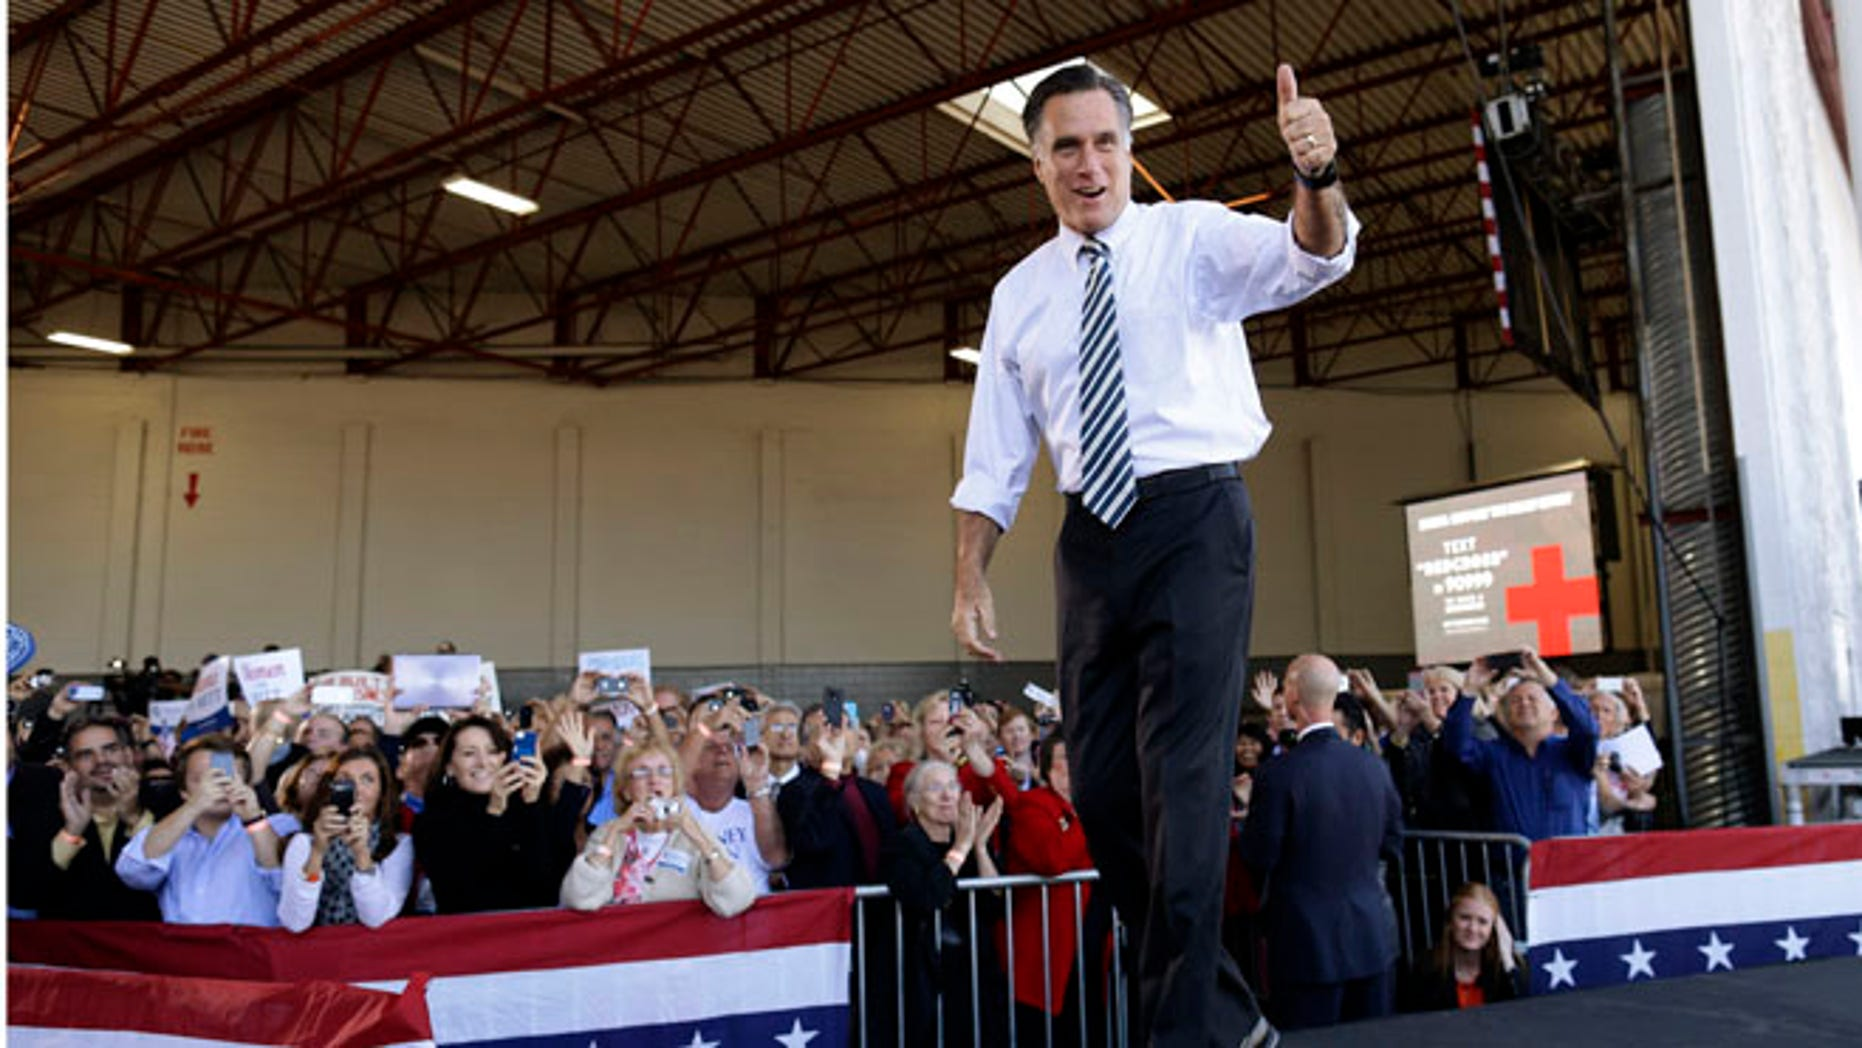 Wednesday, Oct. 31, 2012: Mitt Romney arrives at a campaign stop in Tampa, Fla.